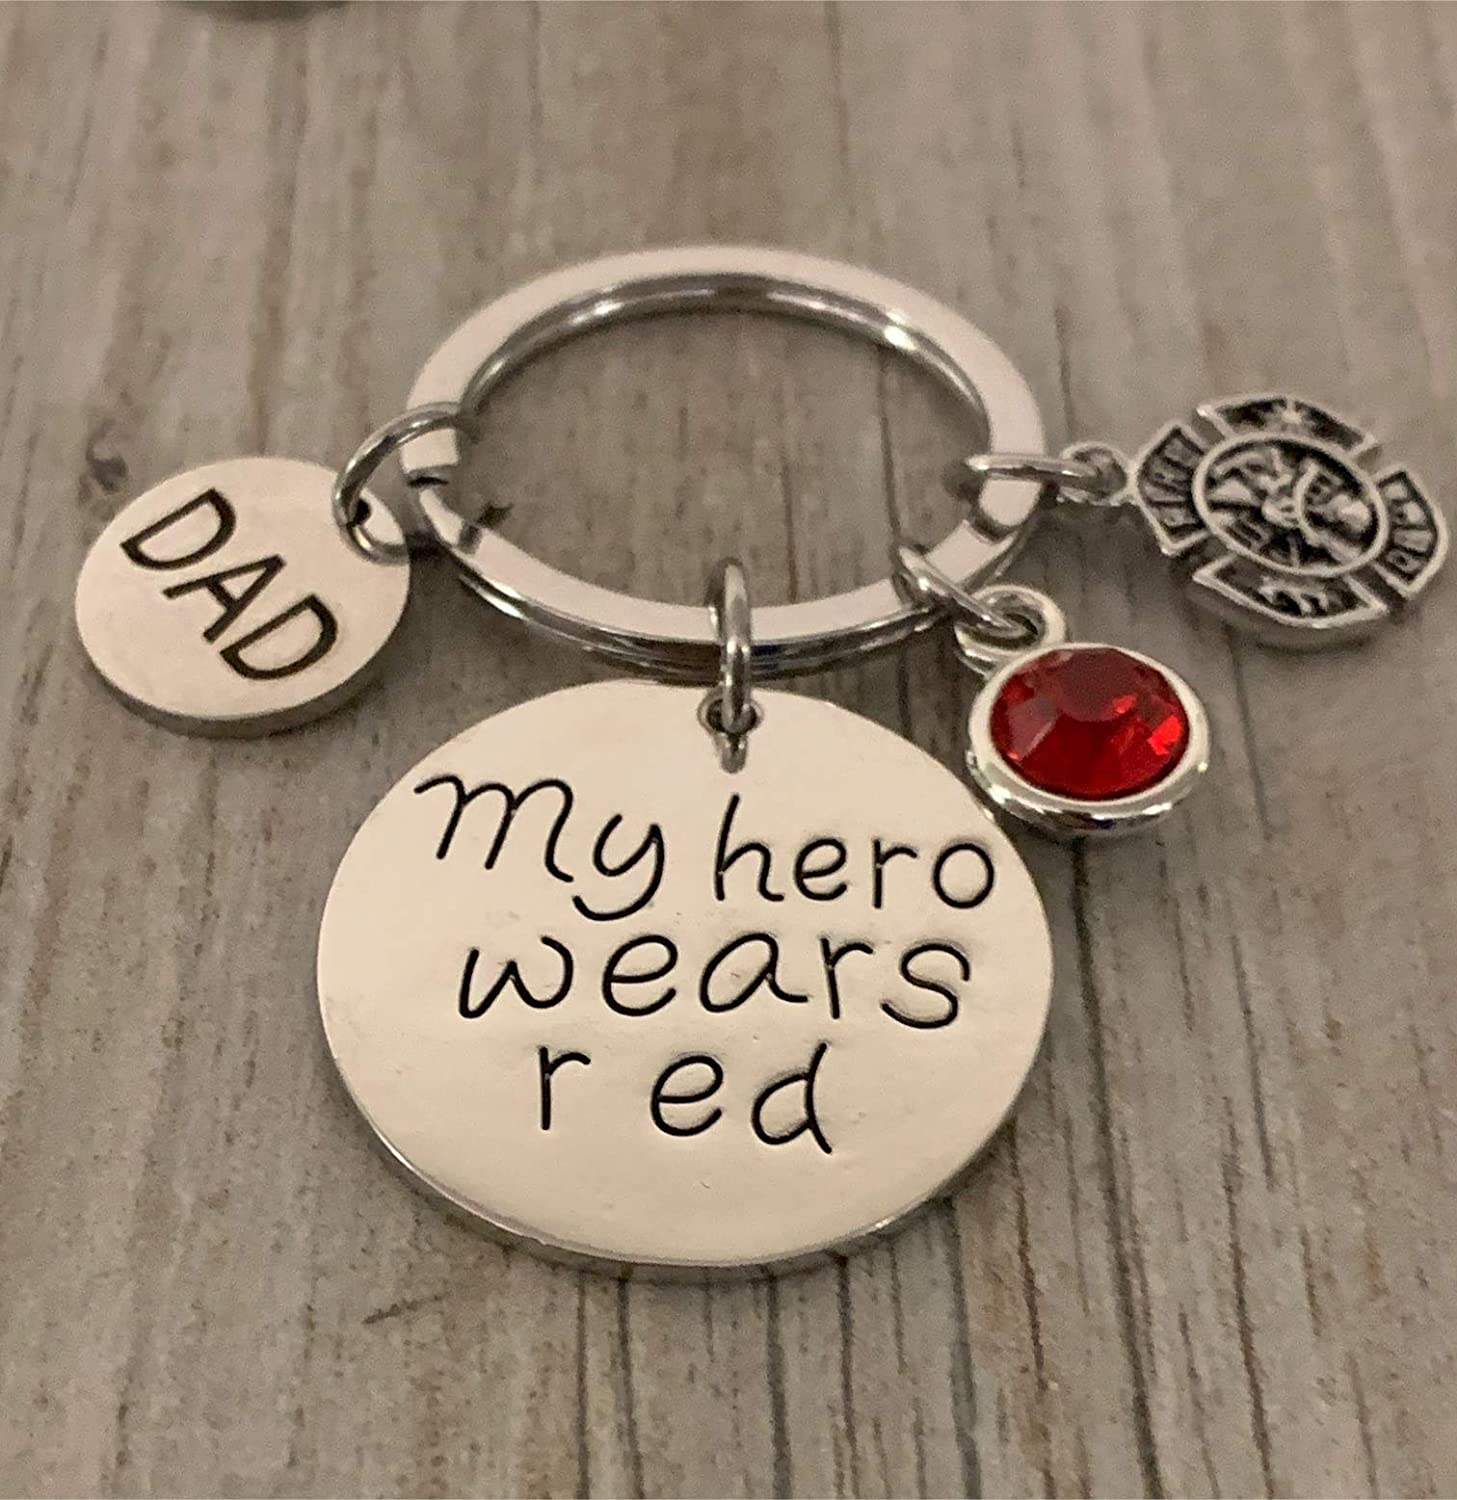 Fireman Jewelry Firefighter Daughter Gift Firefighter Keychain Dad-My Hero Wears Red Jewelry Gift for Firefighter Wife Family Daughter